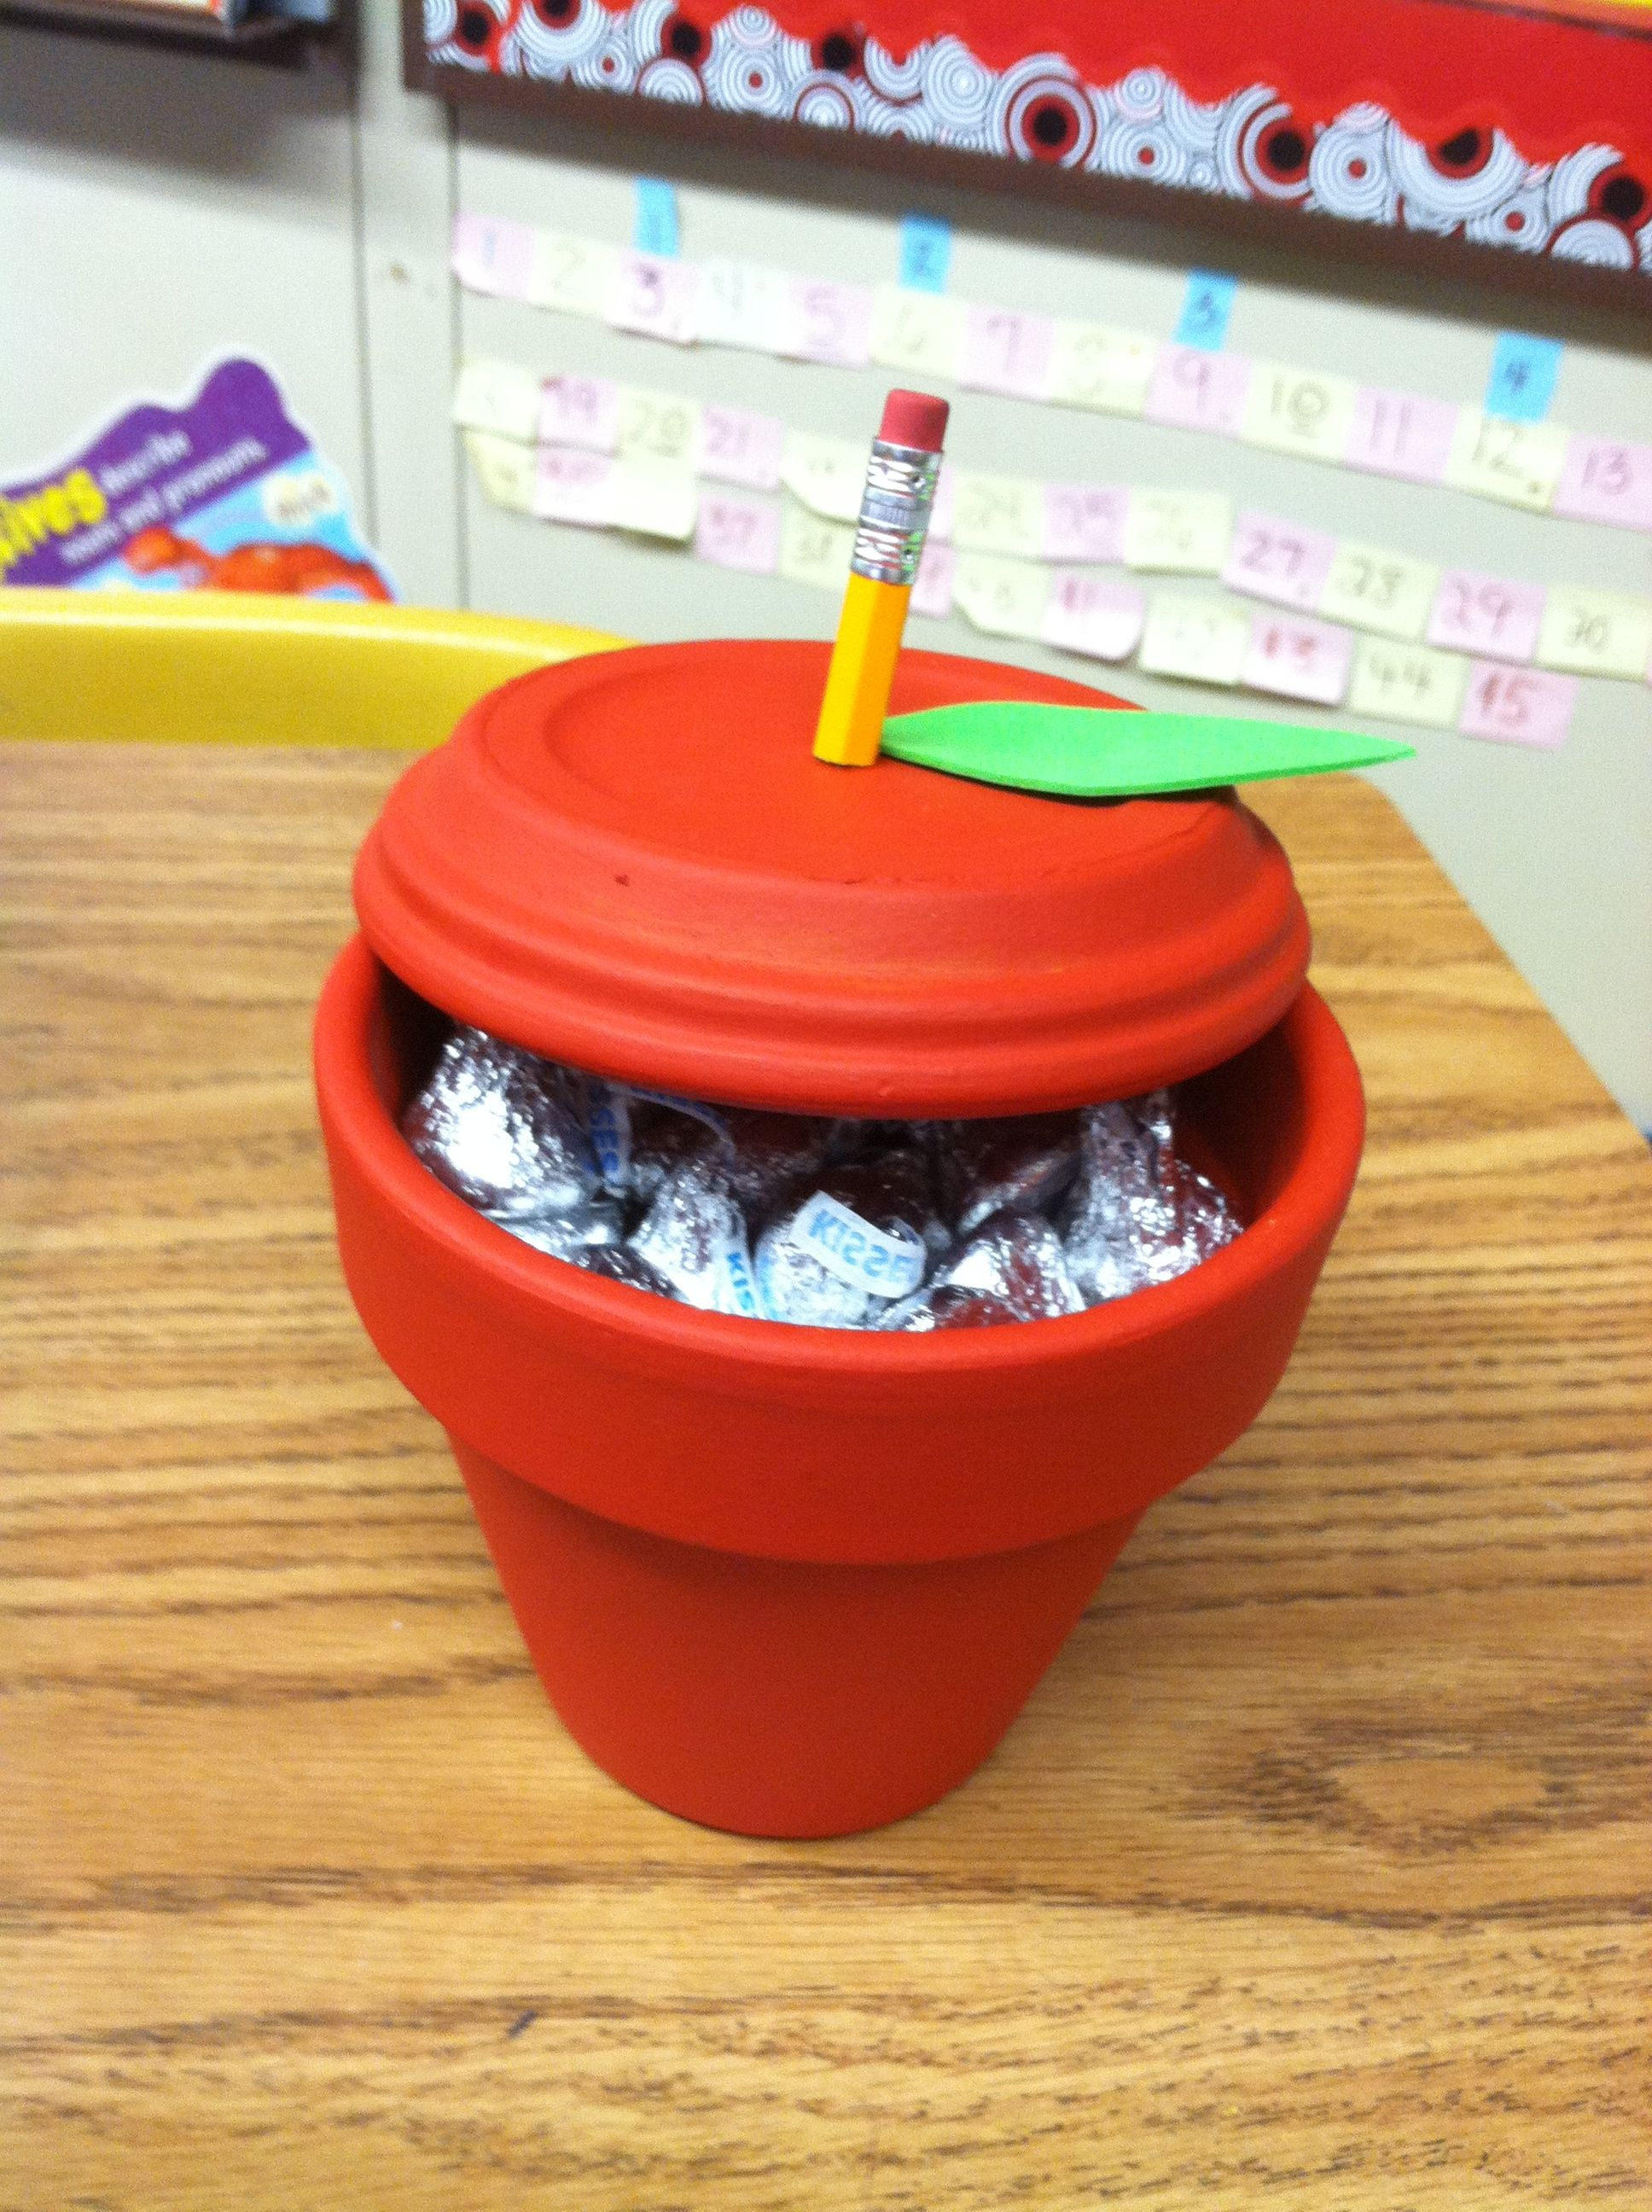 Christmas Gifts For Teachers Diy.My Daughter And I Made This For Her 3rd Grade Teacher For